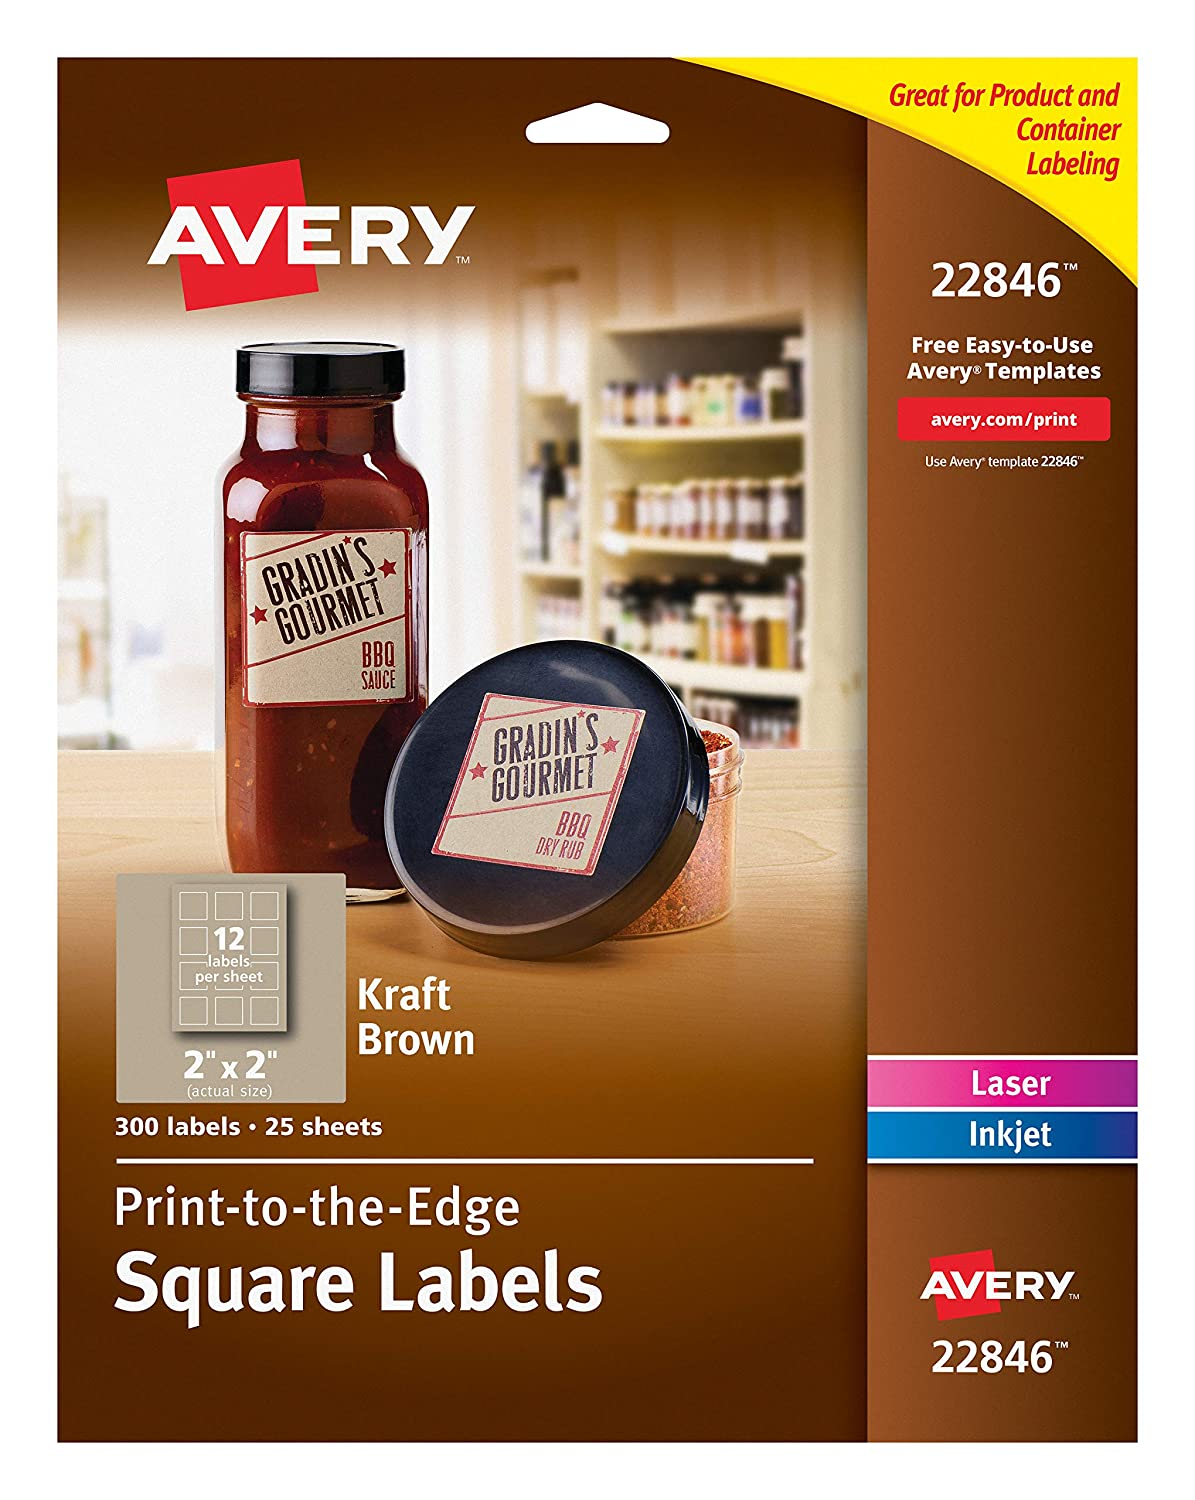 amazoncom avery print to the edge square labels kraft brown 2 x 2 inches pack of